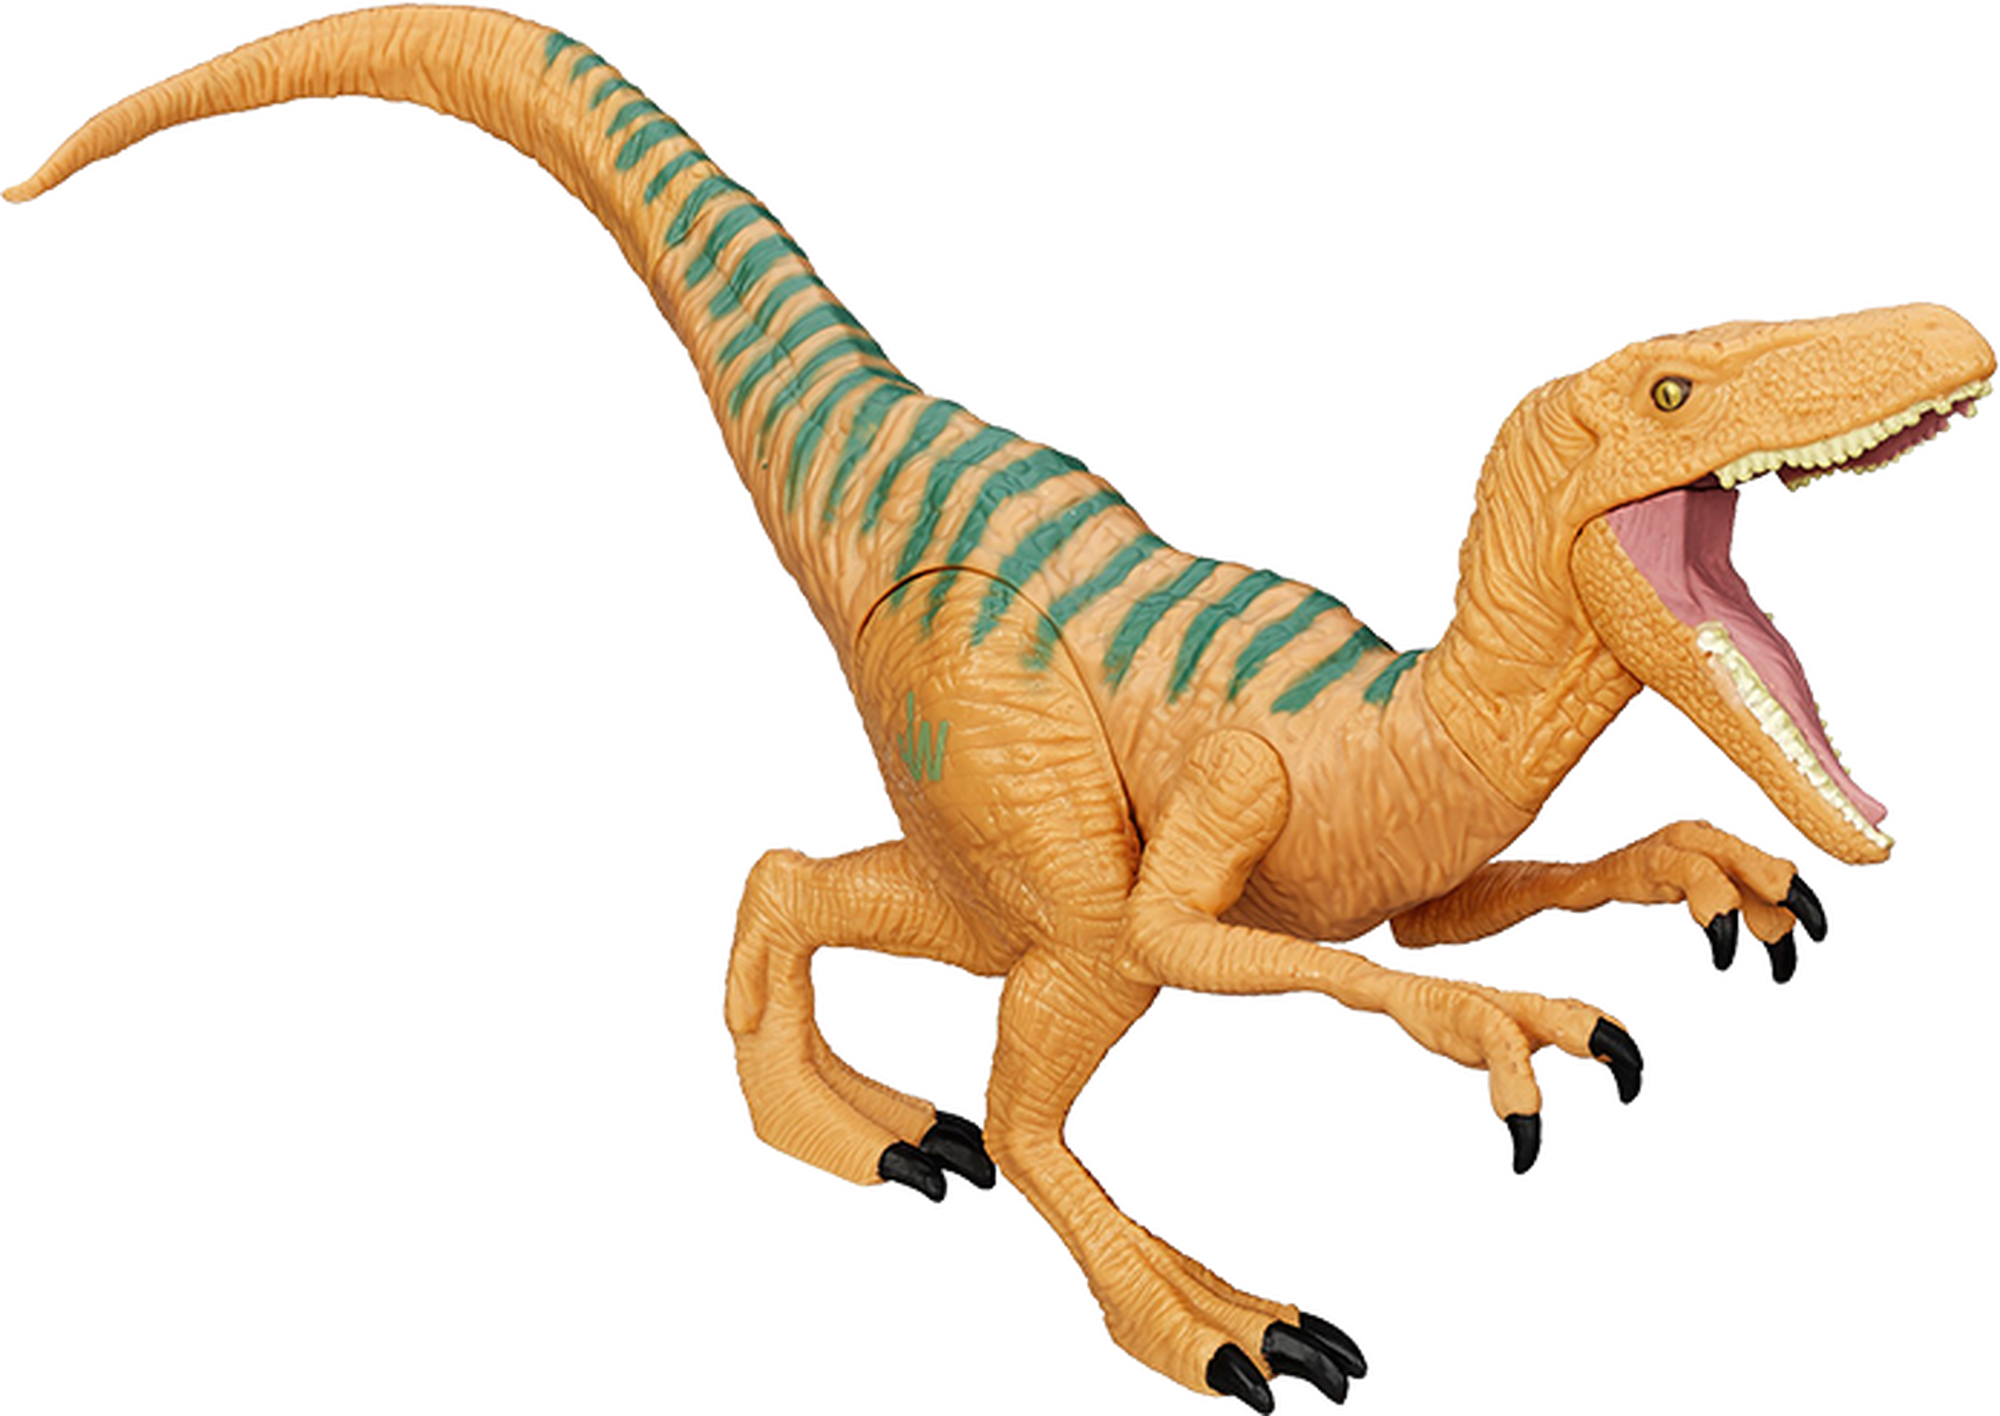 Velociraptor transparent toy. Jurassic world figure echo